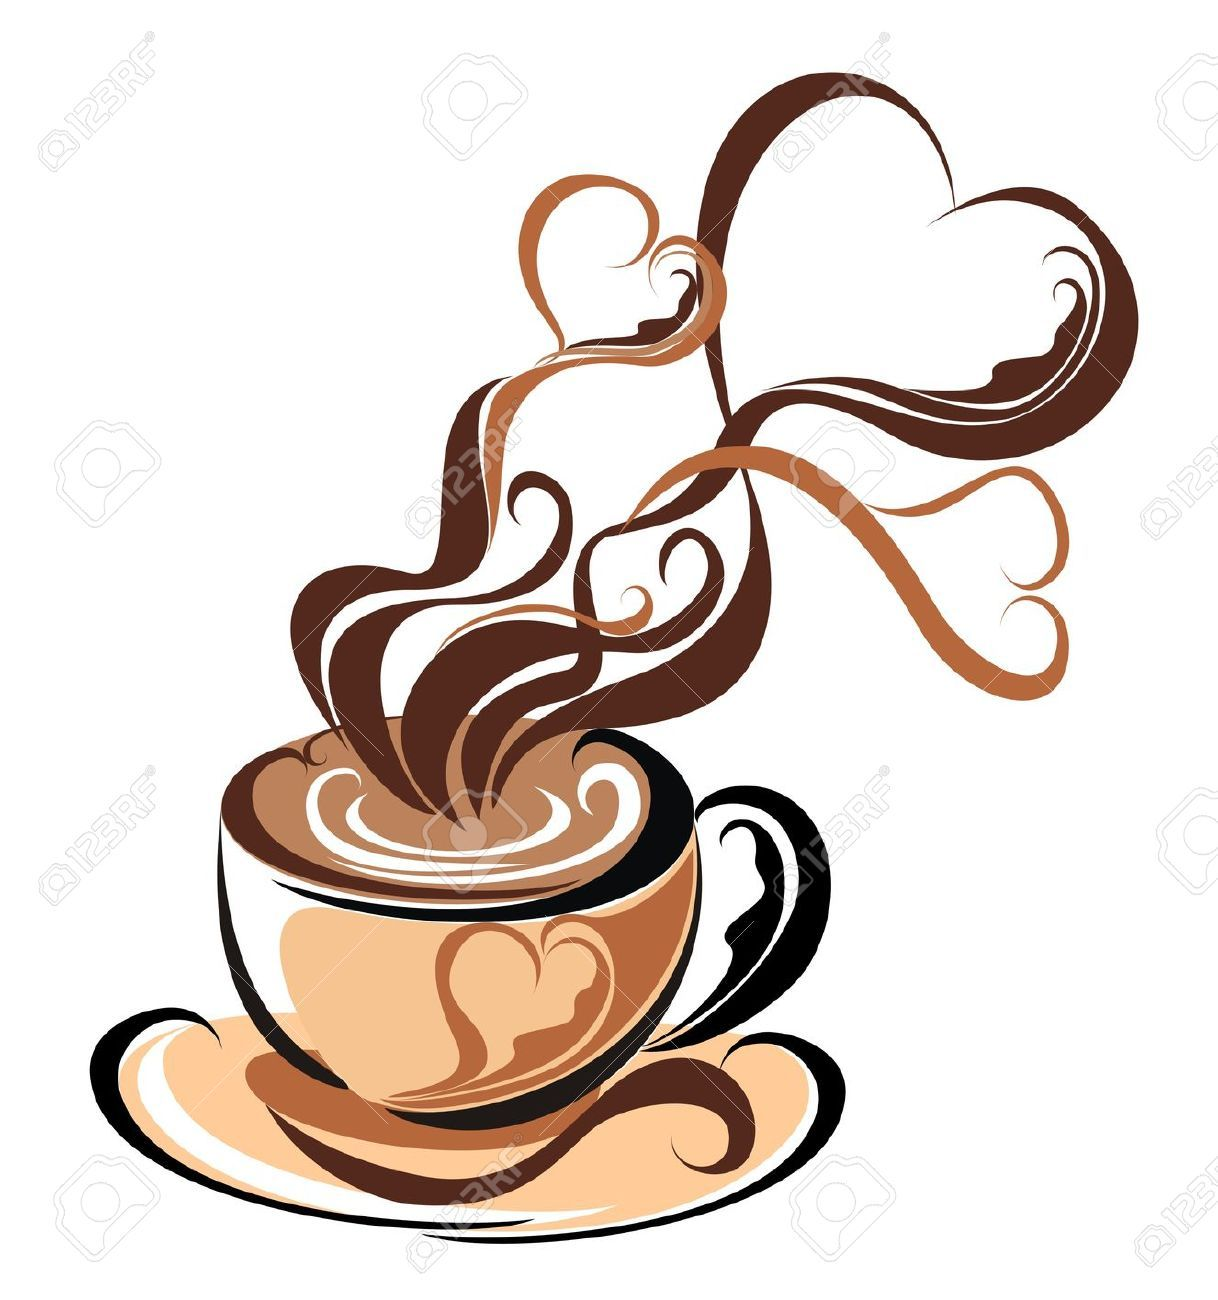 coffee cup clip art Google Search Coffee heart, Coffee